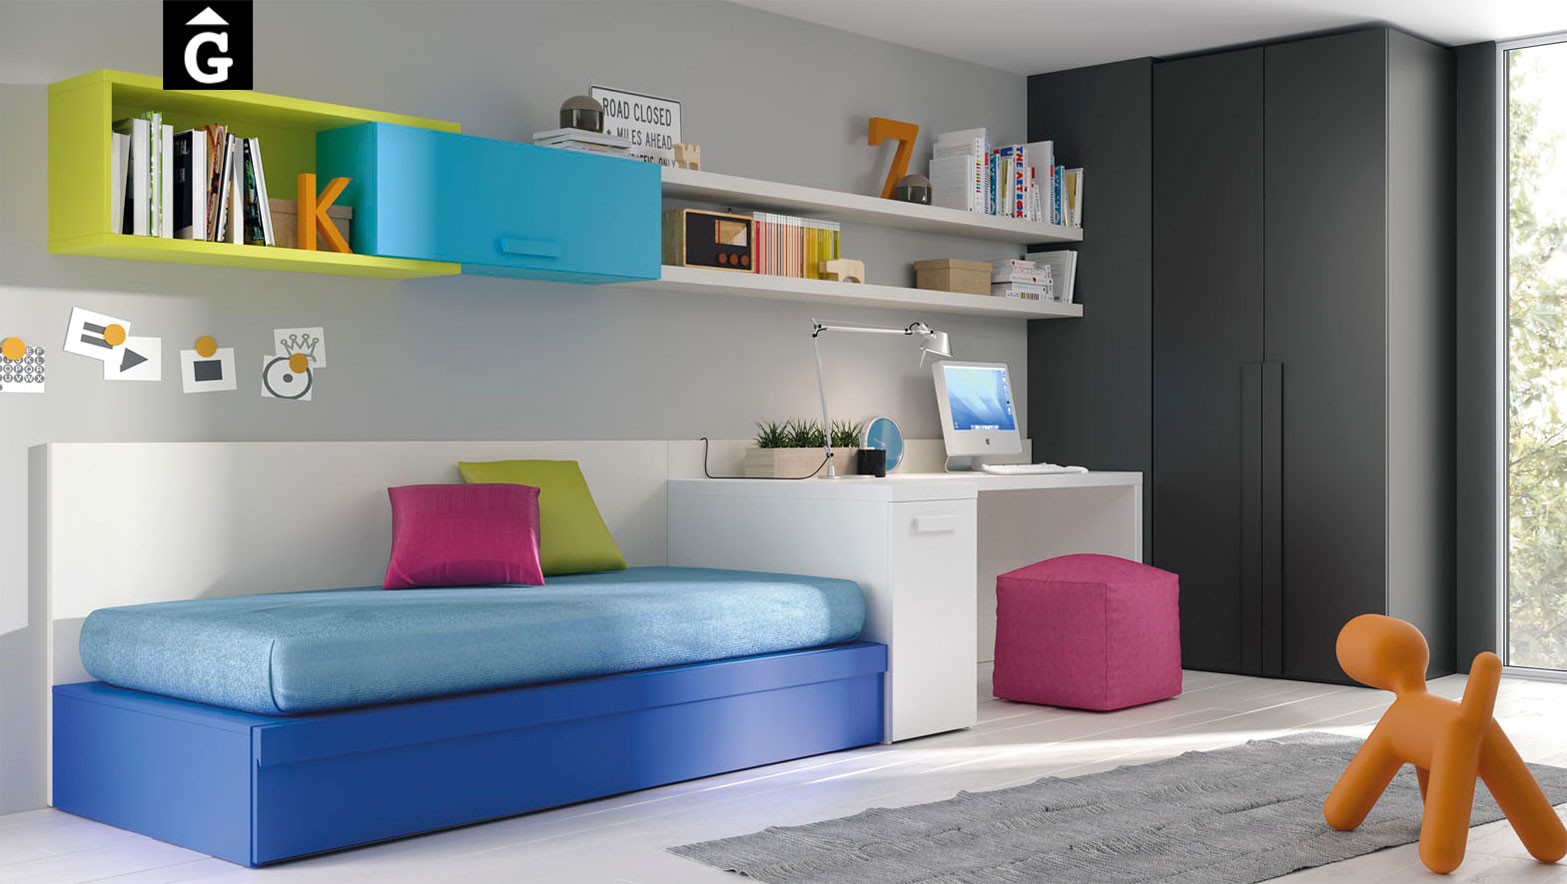 Infinity coloraines mobles gifreu for Muebles infinity